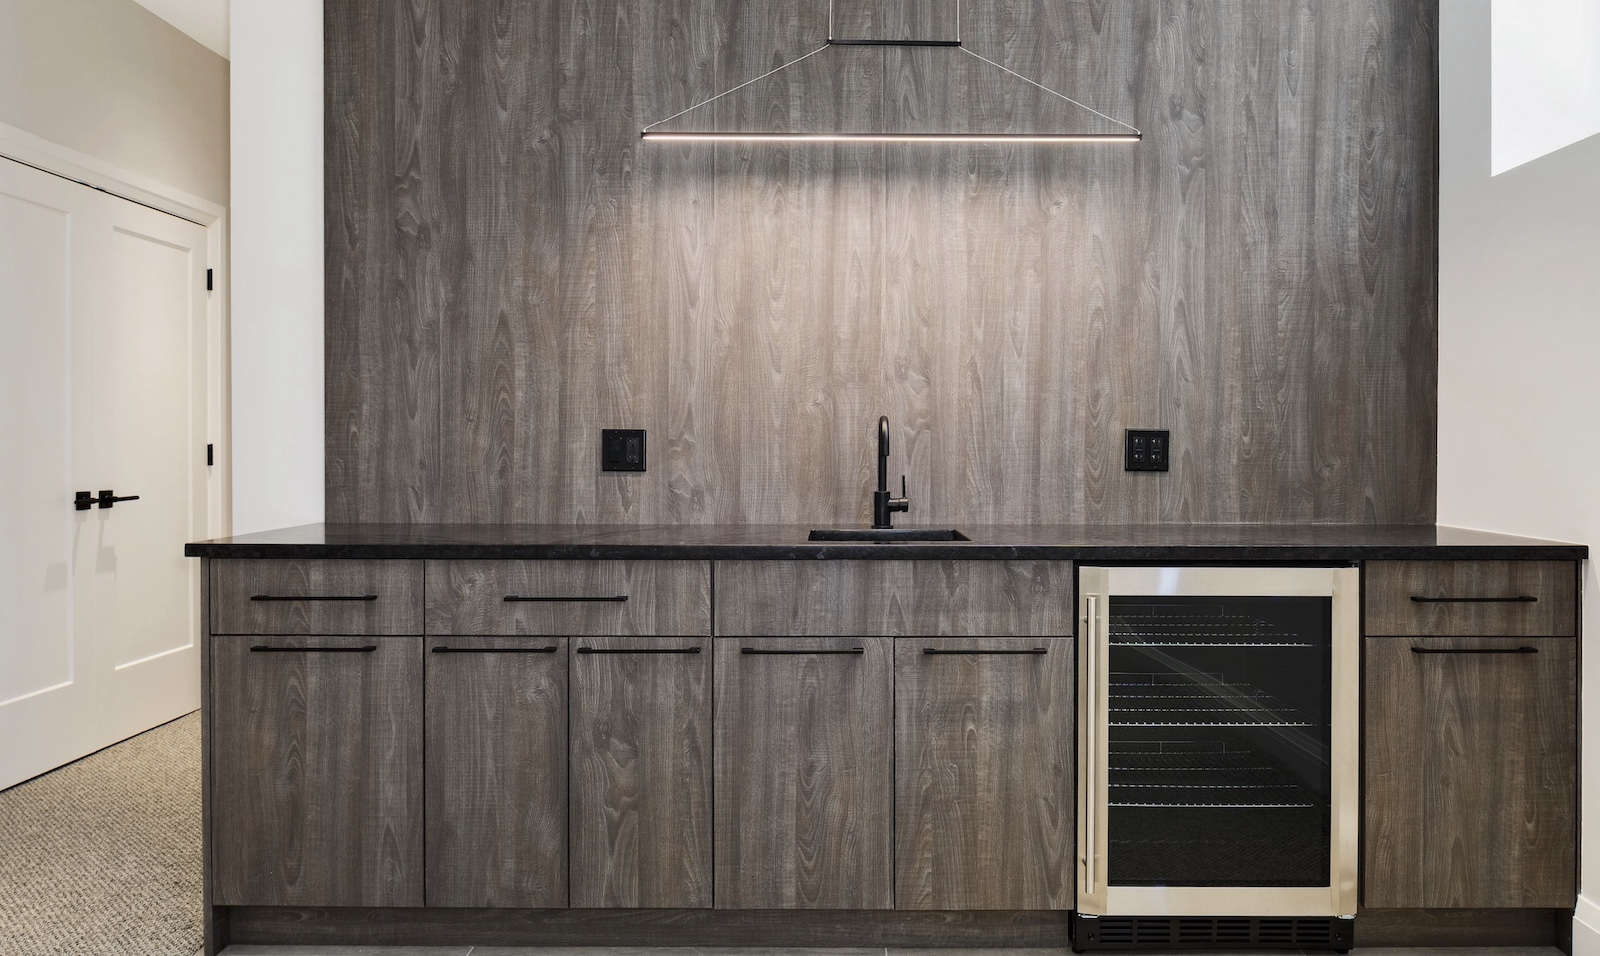 The faux range hood above the countertop is created by LED lighting